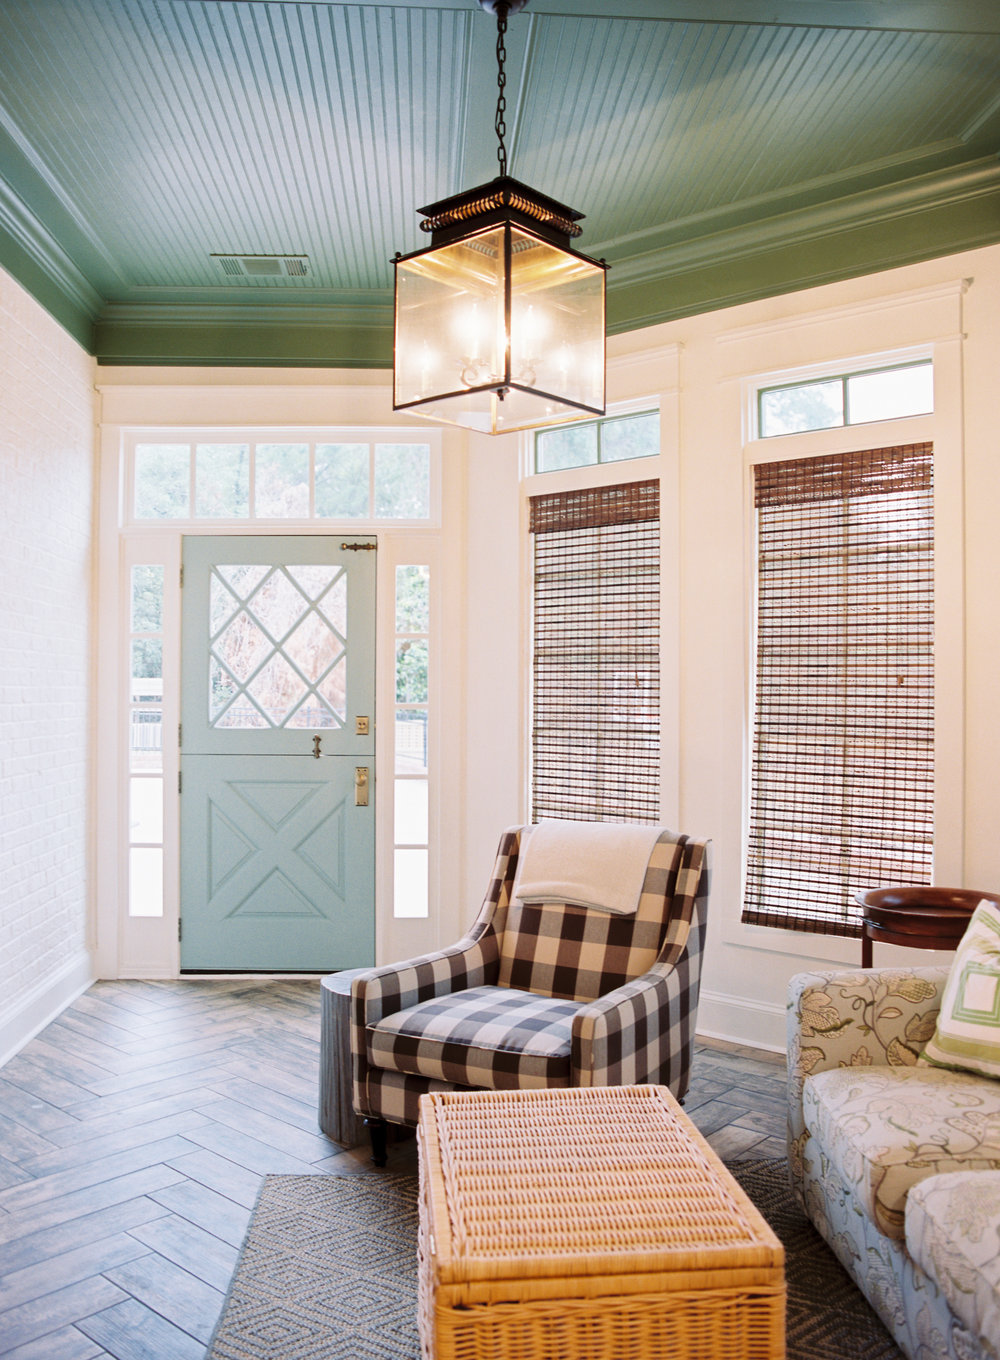 The Dutch Door Home Porch & Dutch Door.jpg